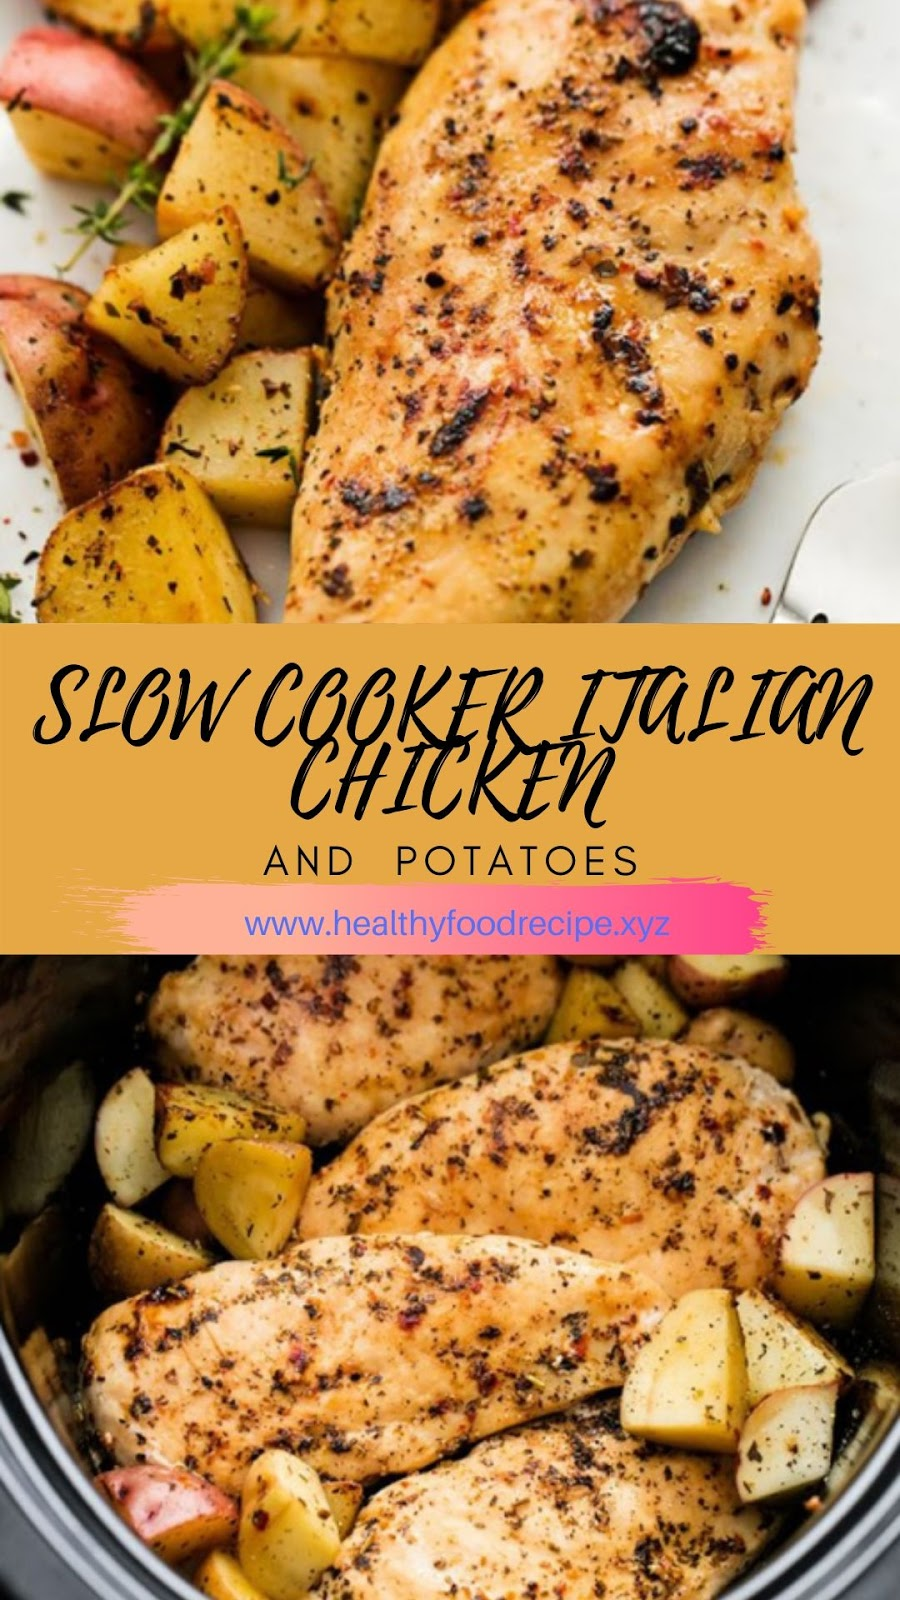 SLOW COOKER ITALIAN CHICKEN & POTATOES